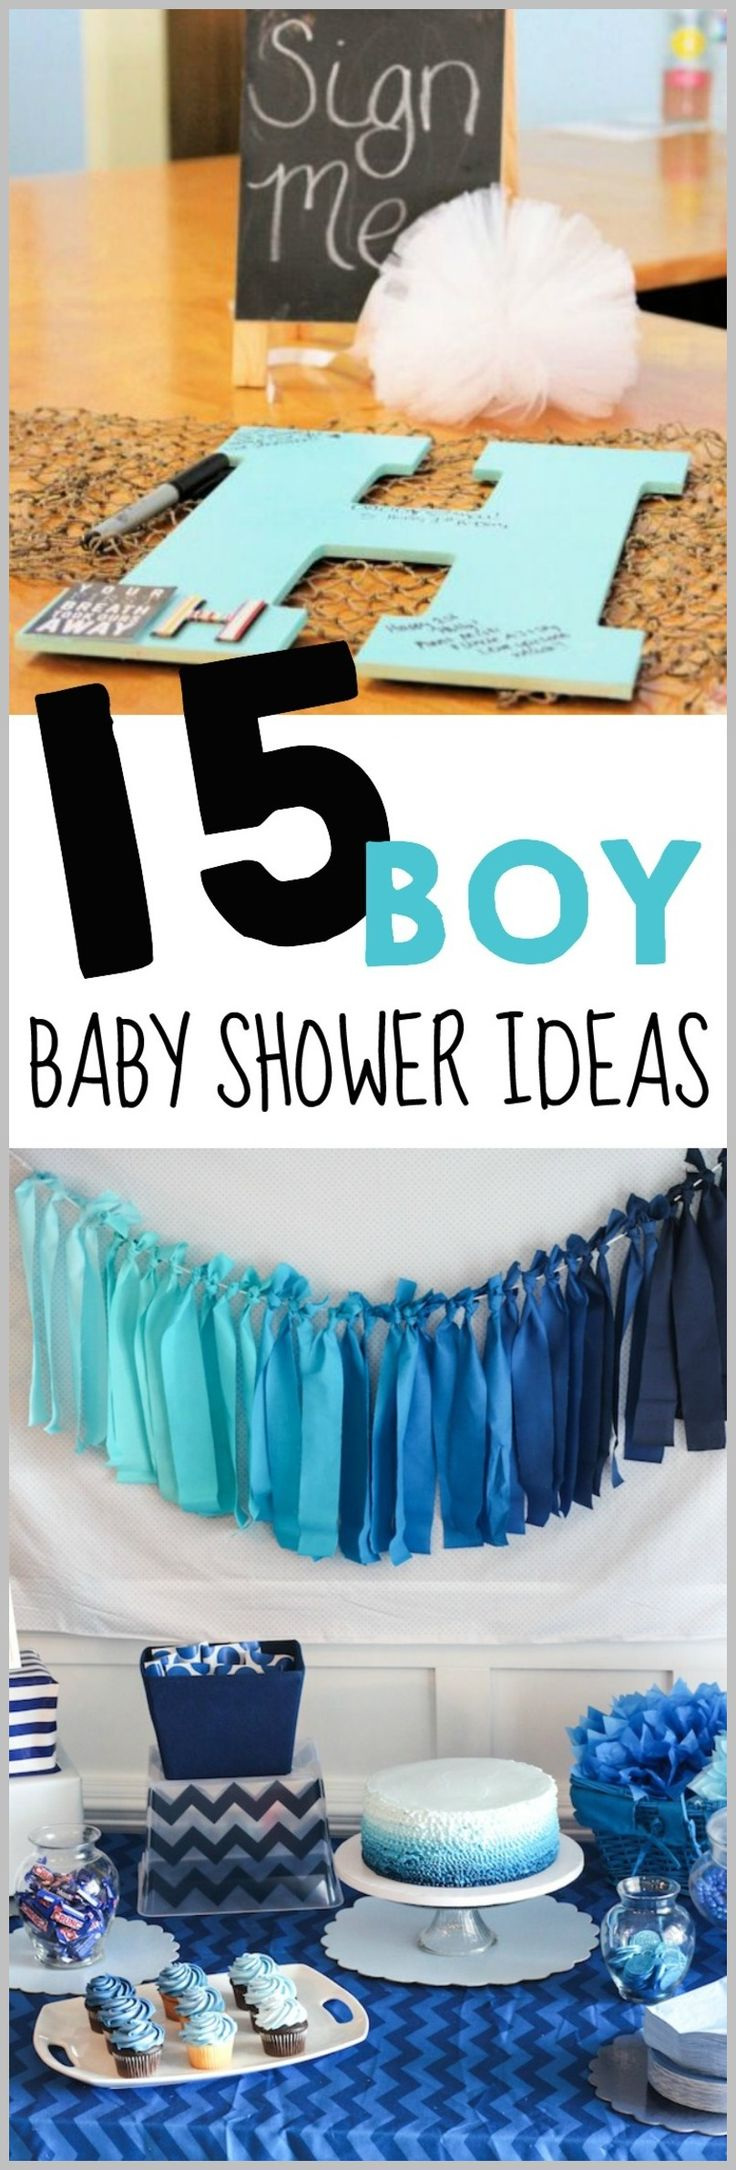 [Baby Shower Ideas] How To Arrange A Really Successful Baby Shower *** You can get additional details at the image link.